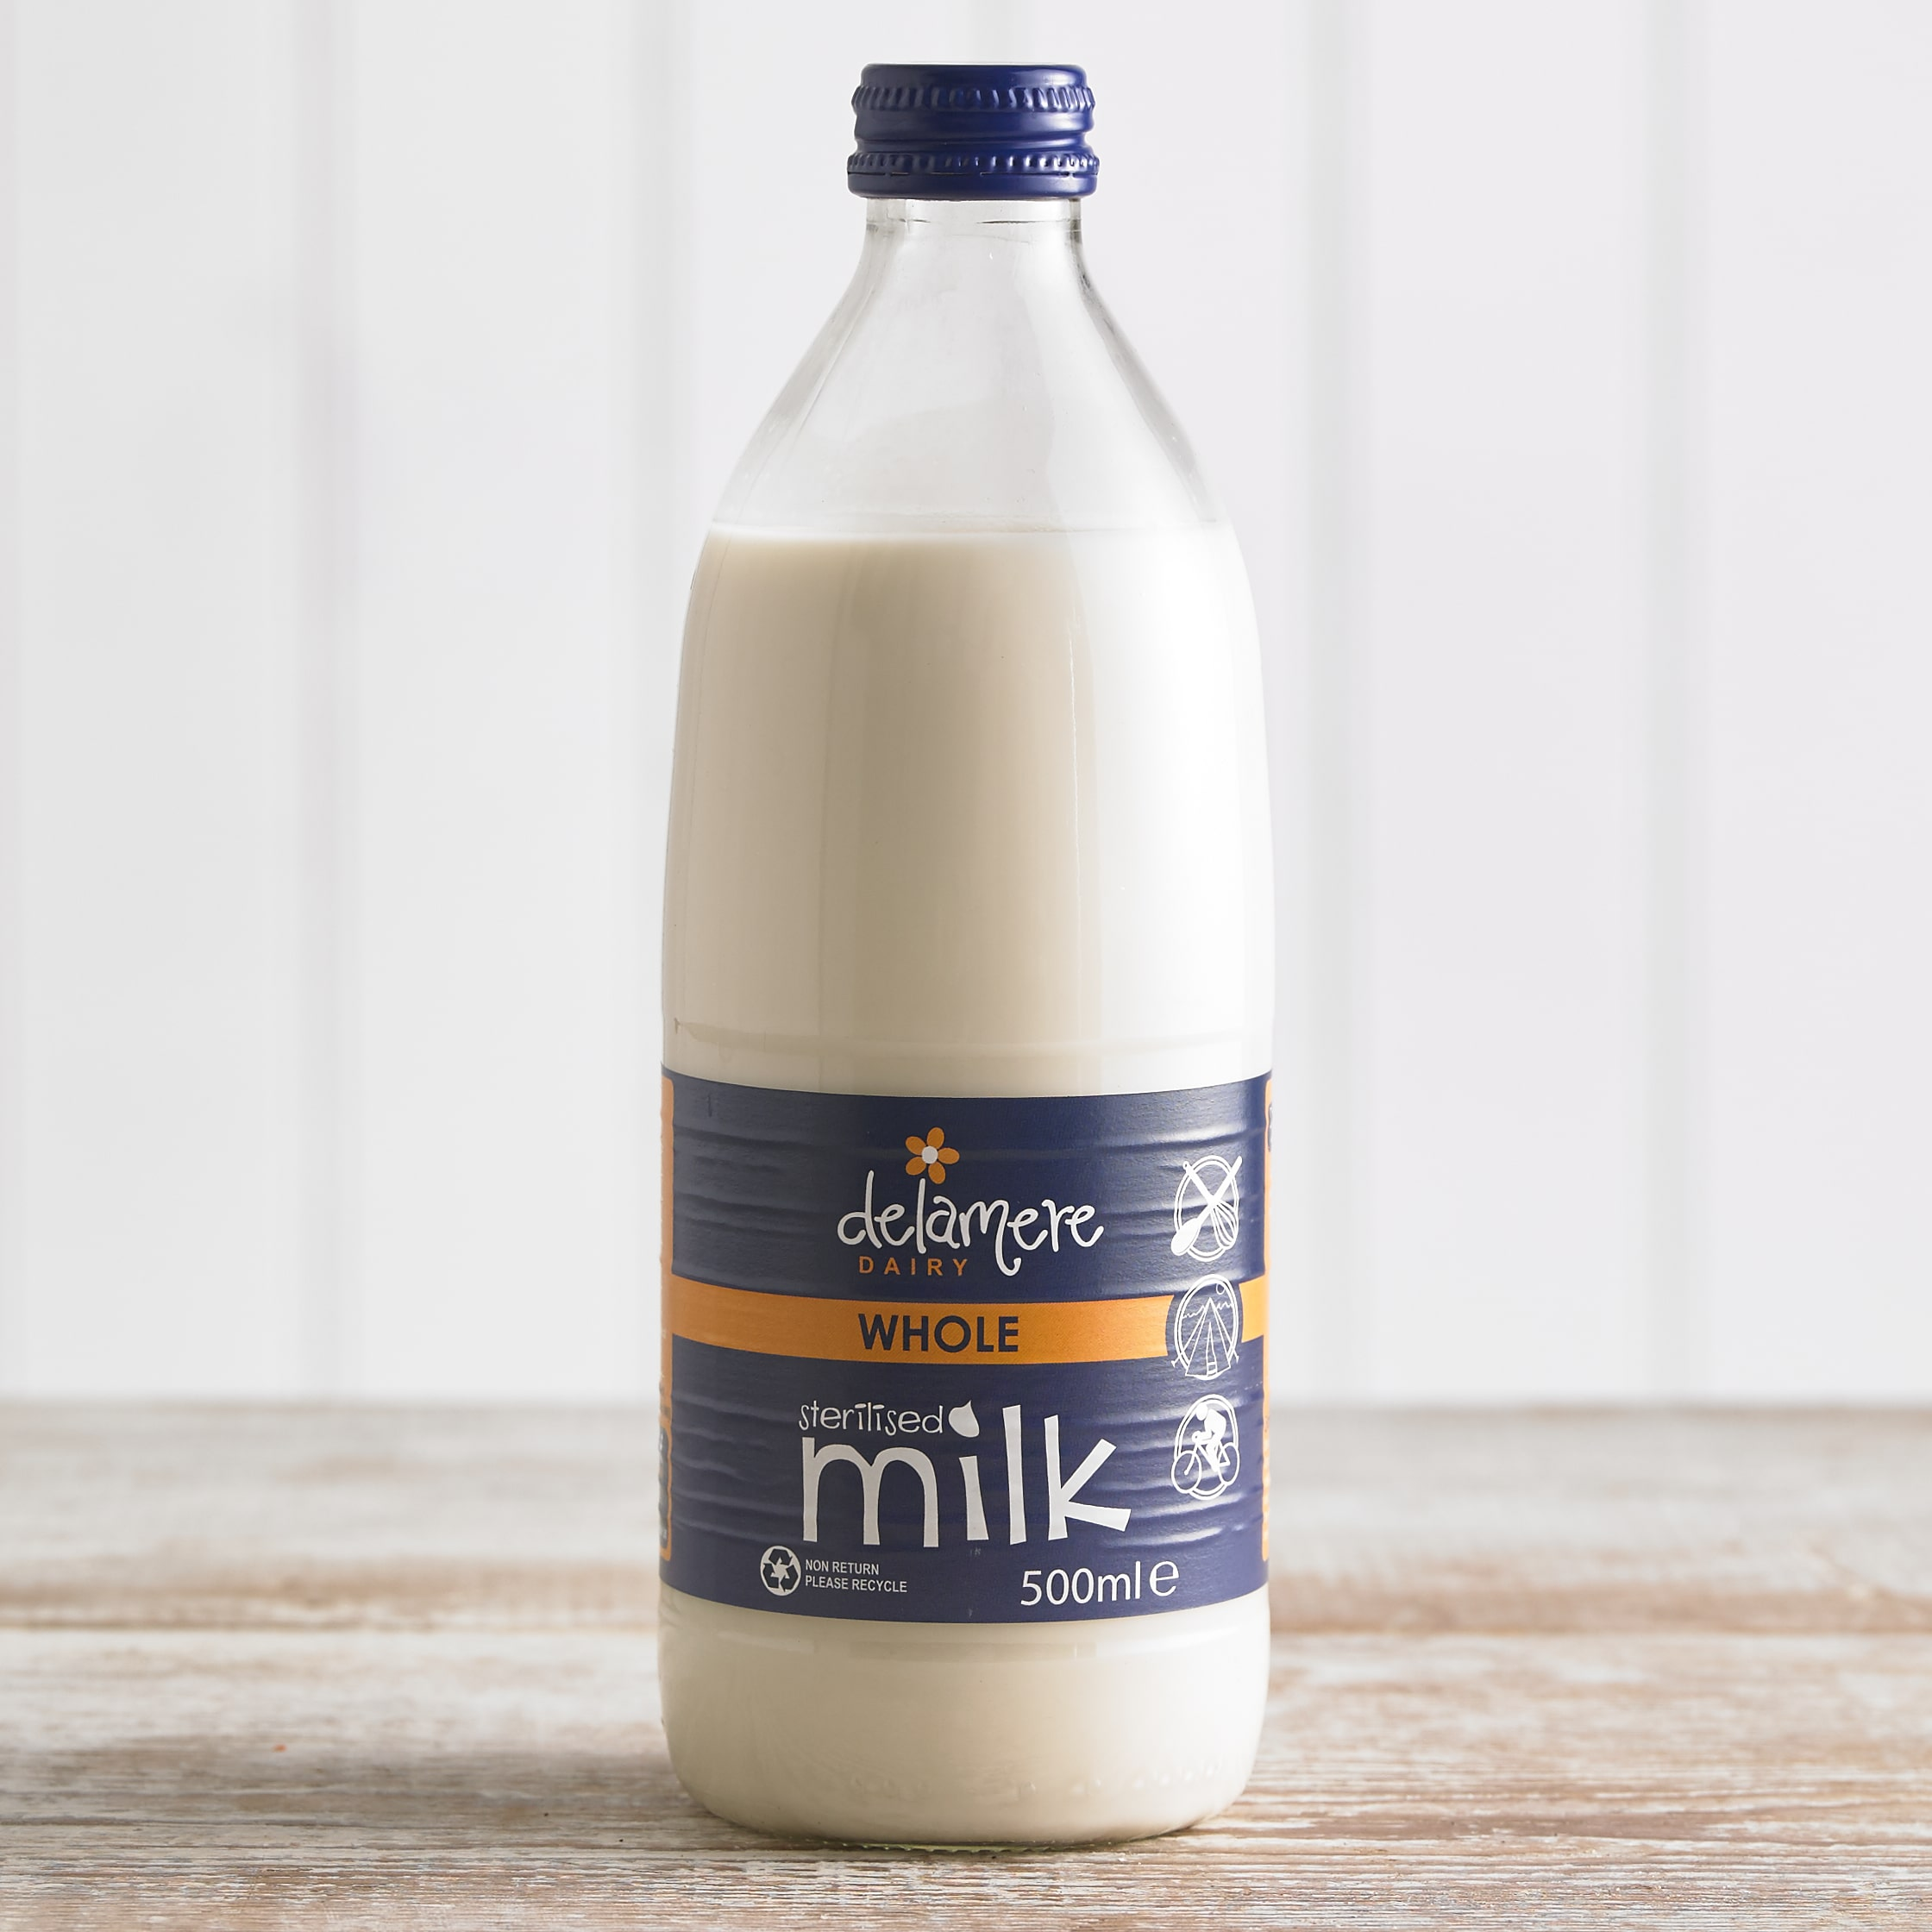 Delamere Sterilised Whole Milk in Glass, 500ml